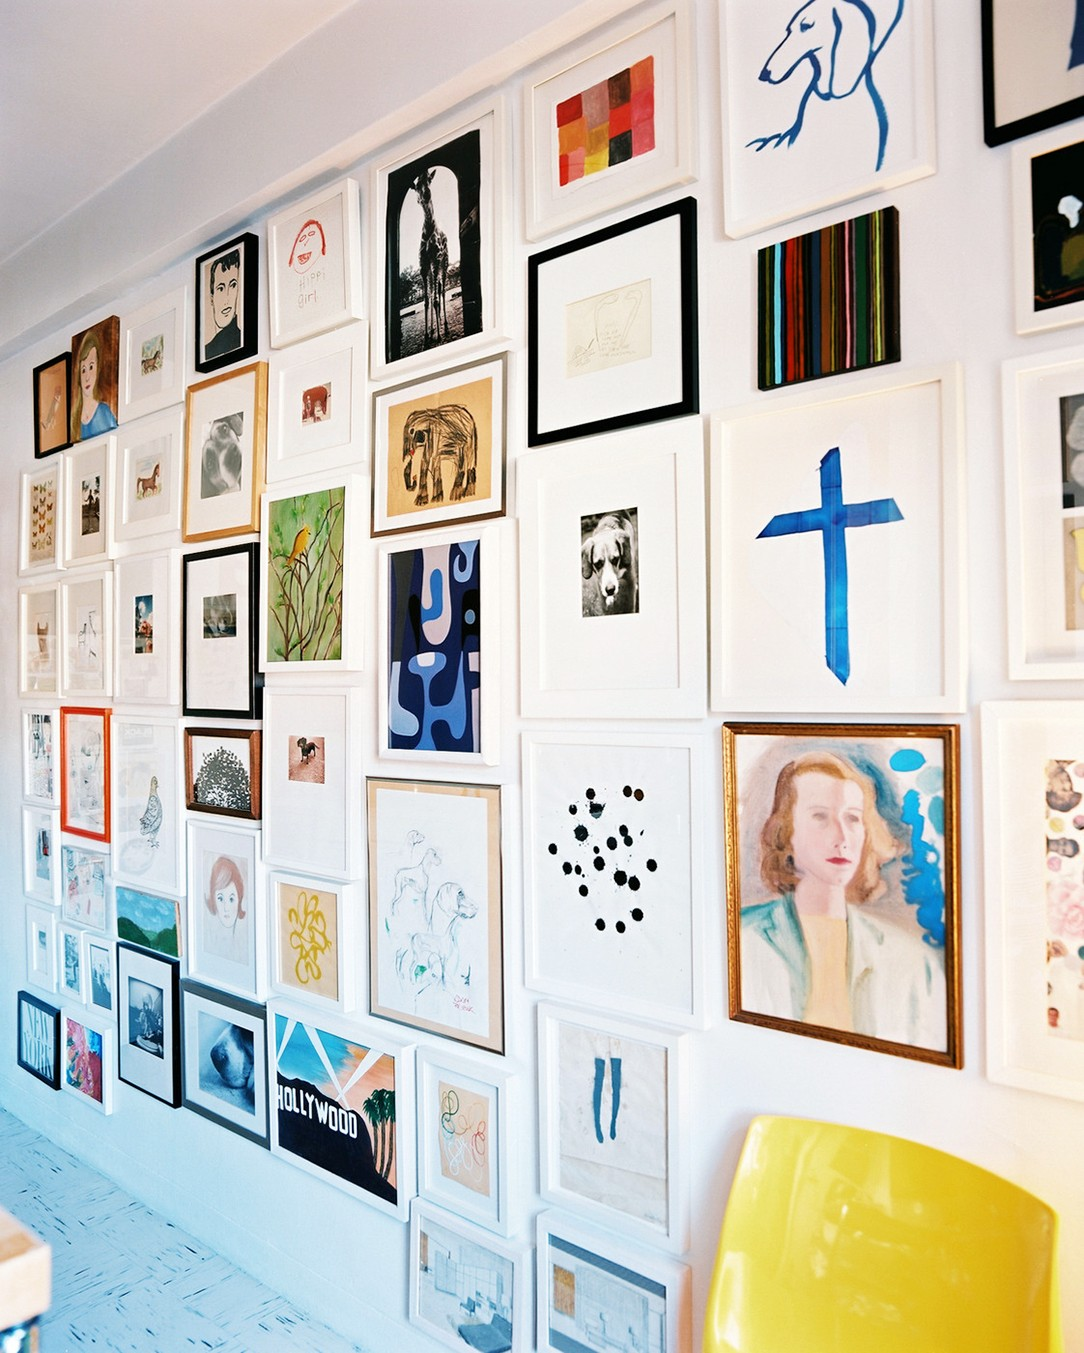 From-Blank-Wall-to-Gallery-Wall-In-Simple-Steps-via-MyDomaine-wallpaper-wp425632-1